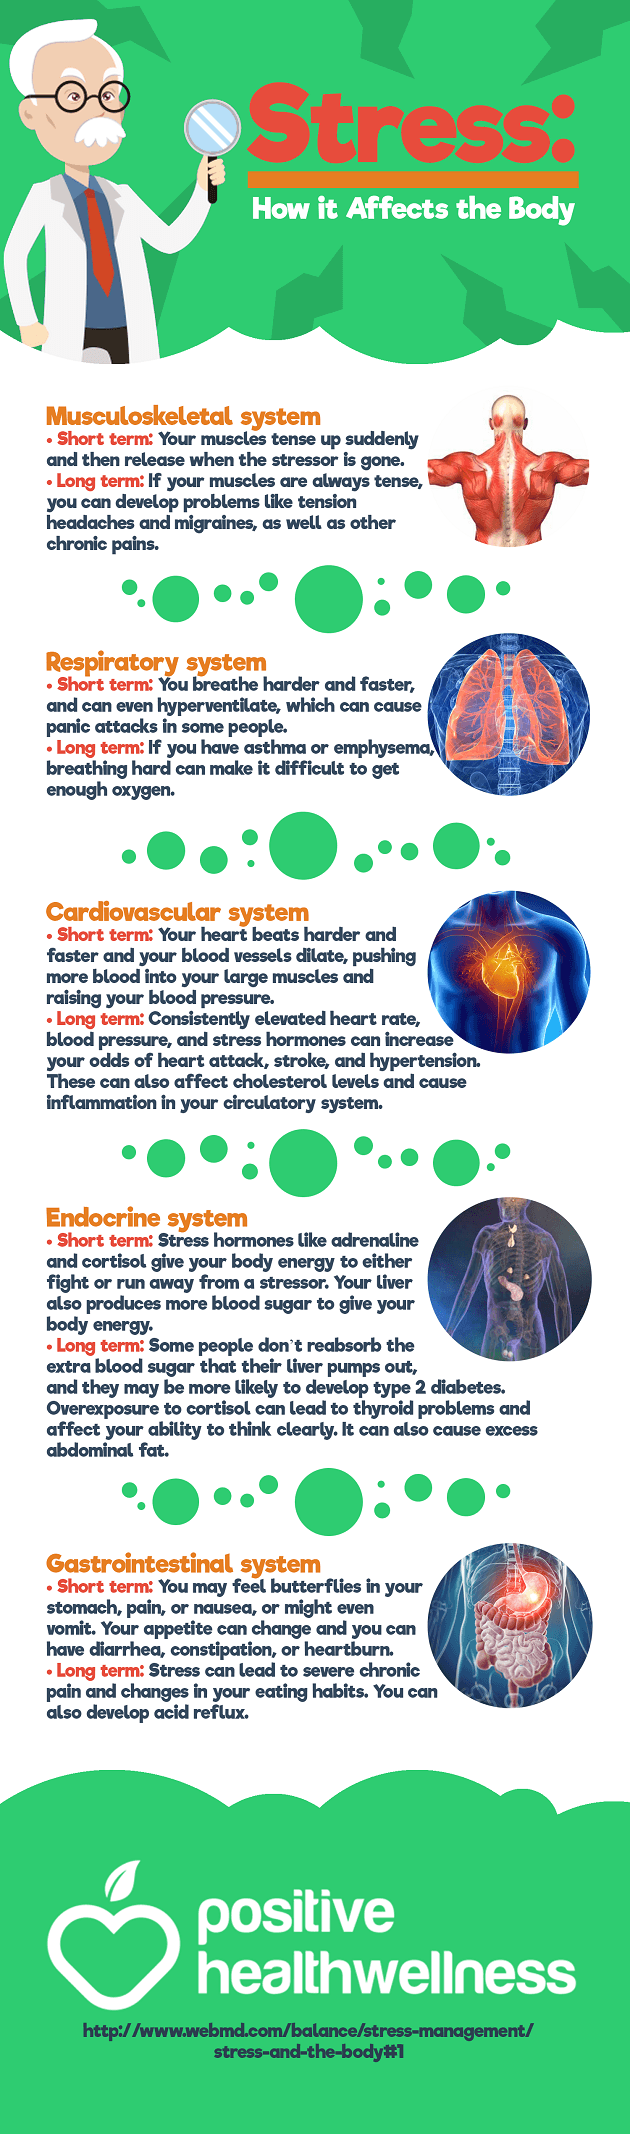 Stress: How it Affects the Body